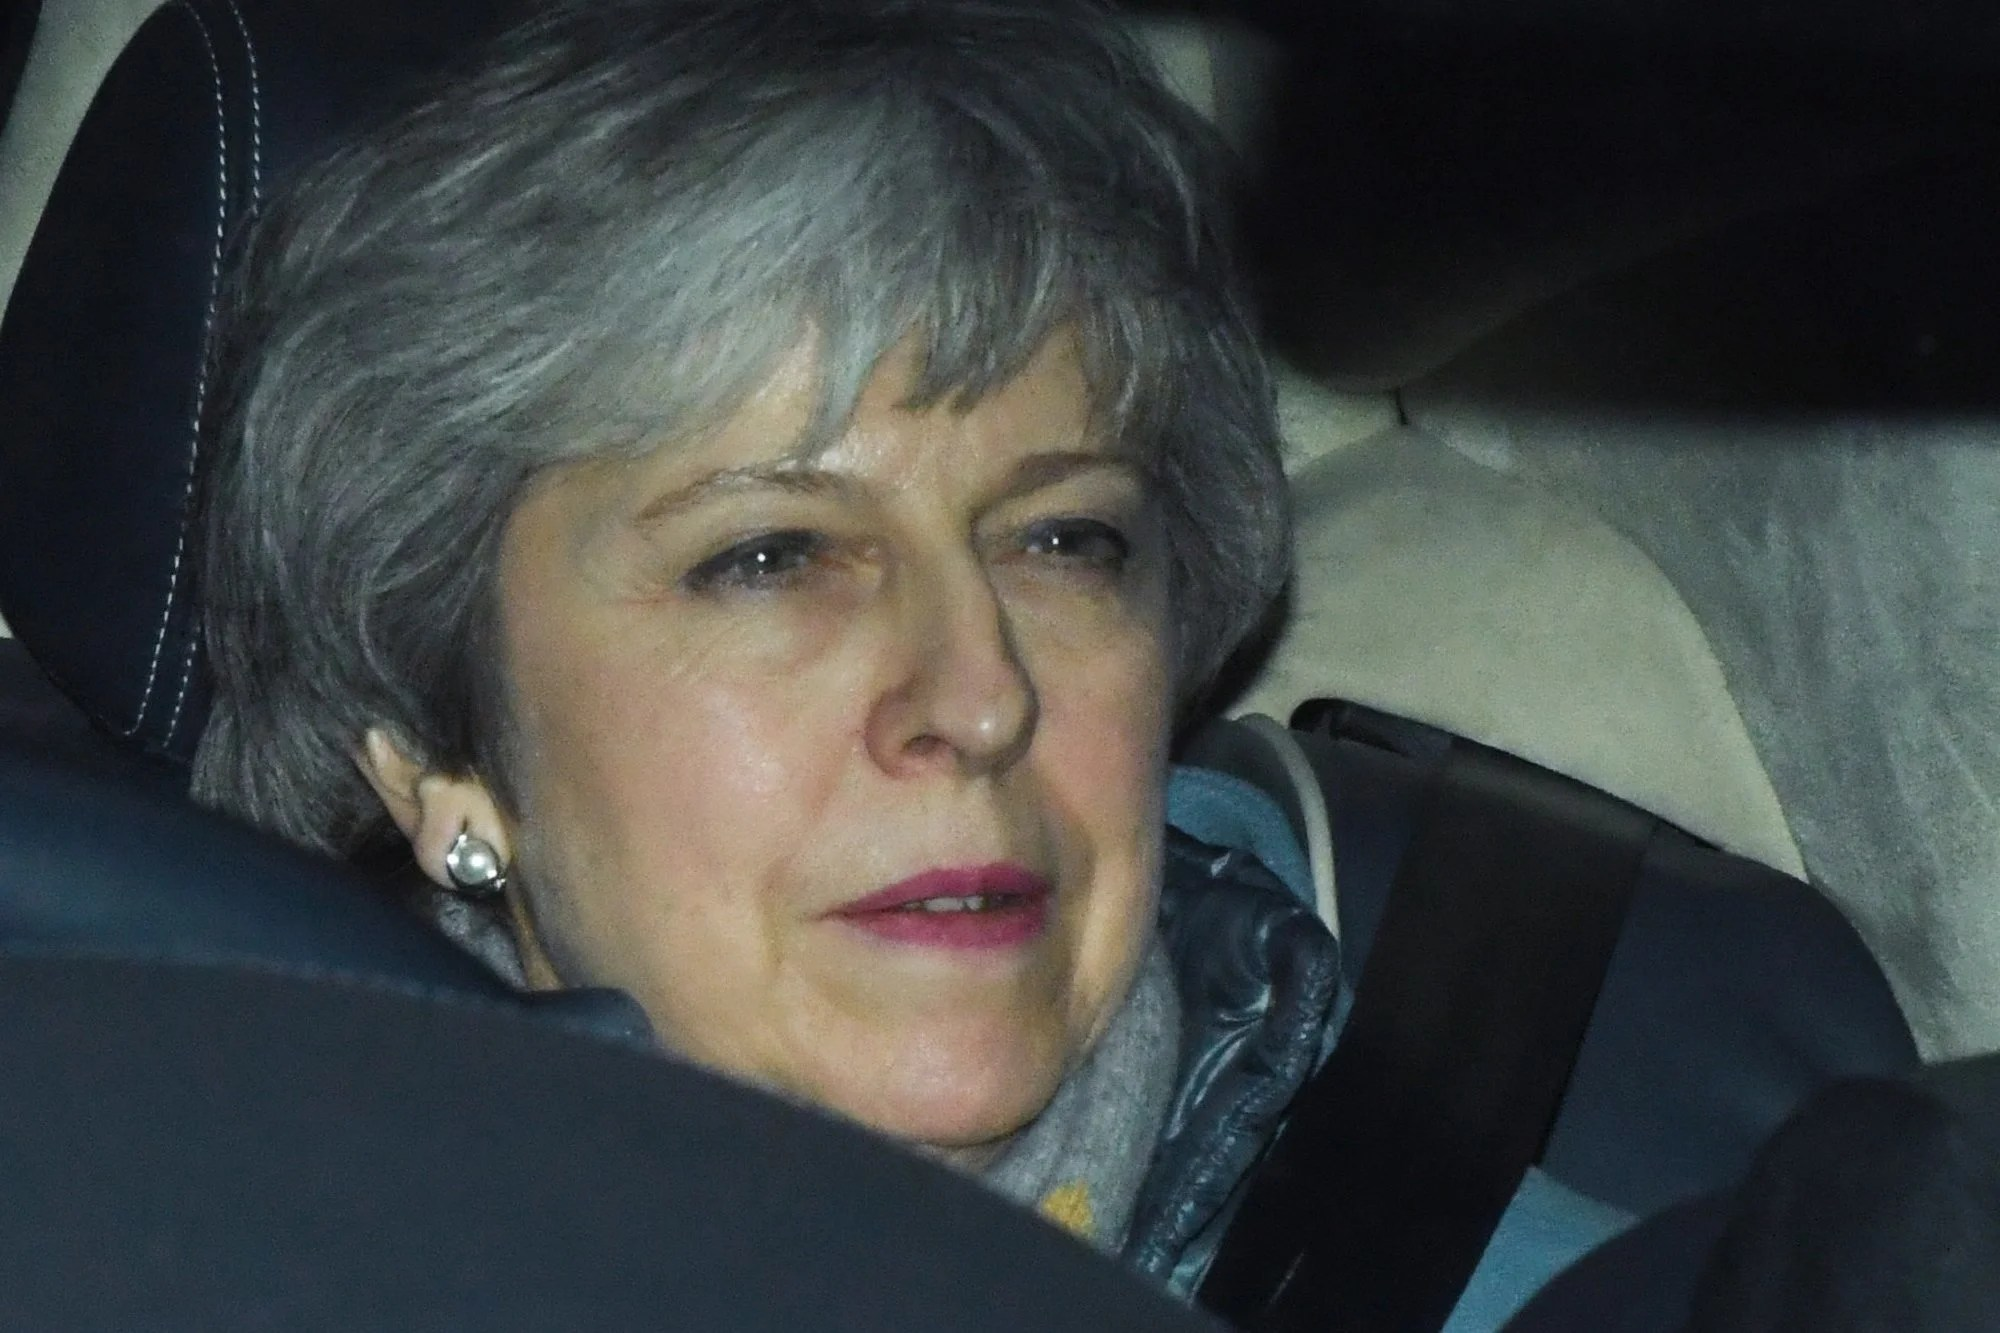 theresamay1403 Brexit news latest: MPs overwhelmingly back delaying UK's EU departure in landmark vote